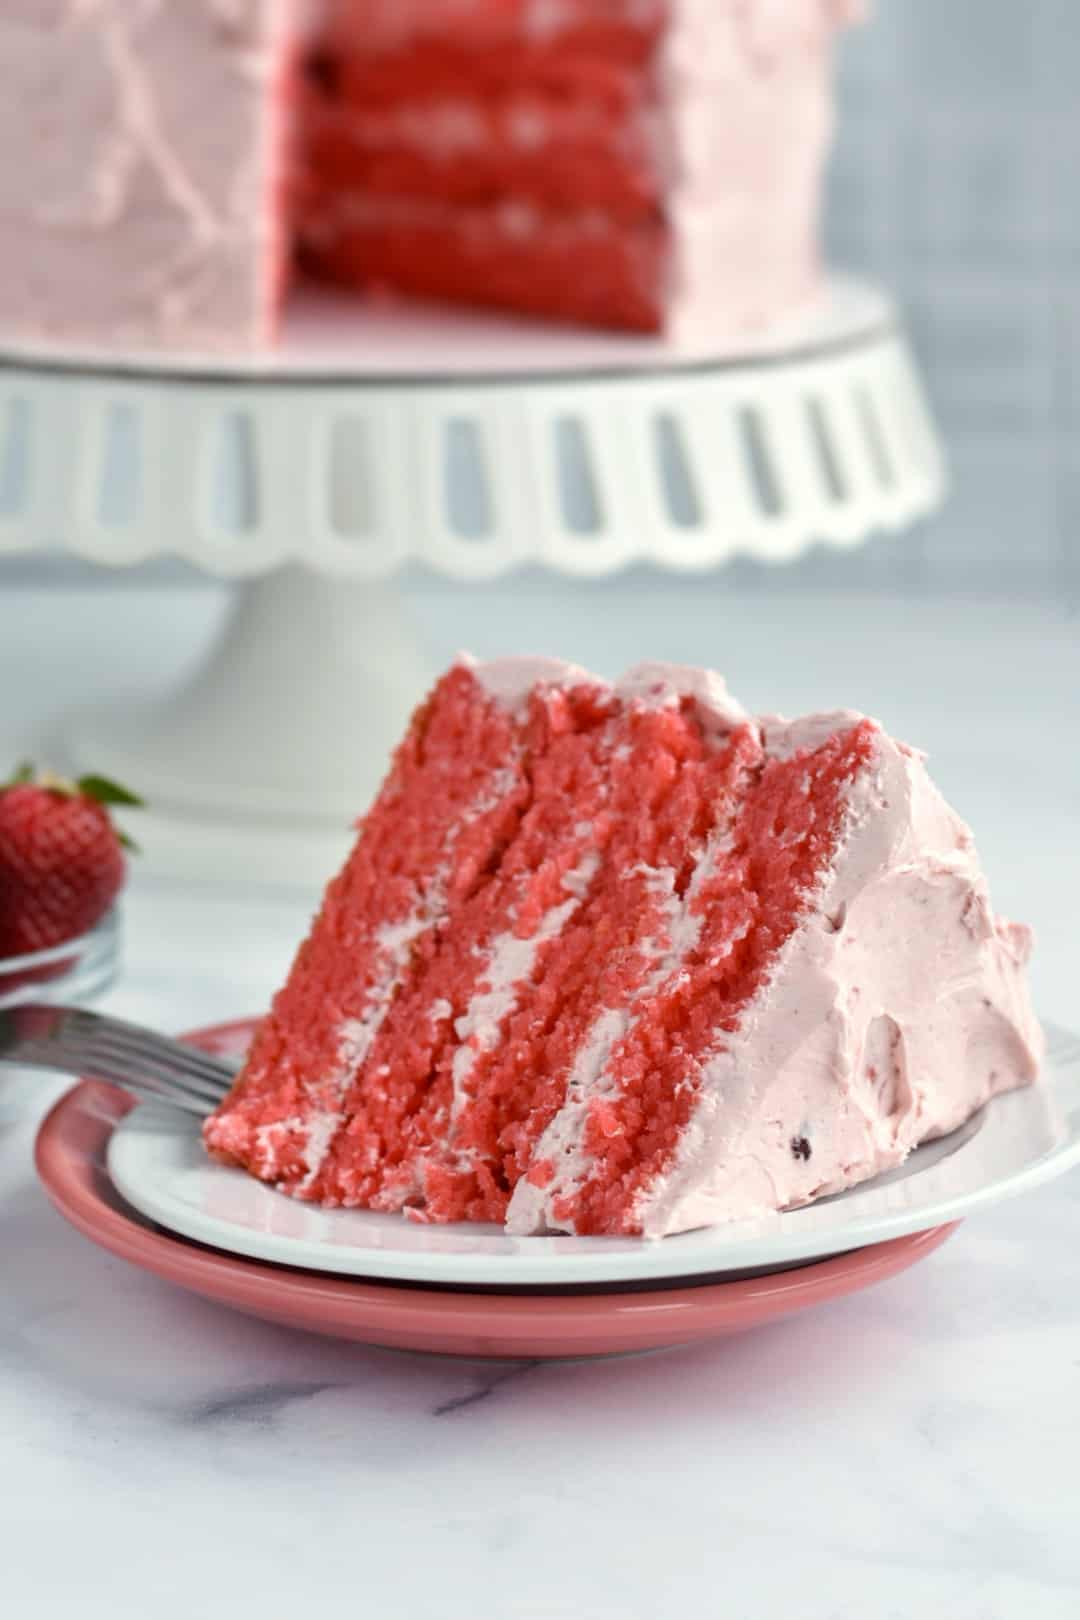 closeup picture of strawberry cake on plate